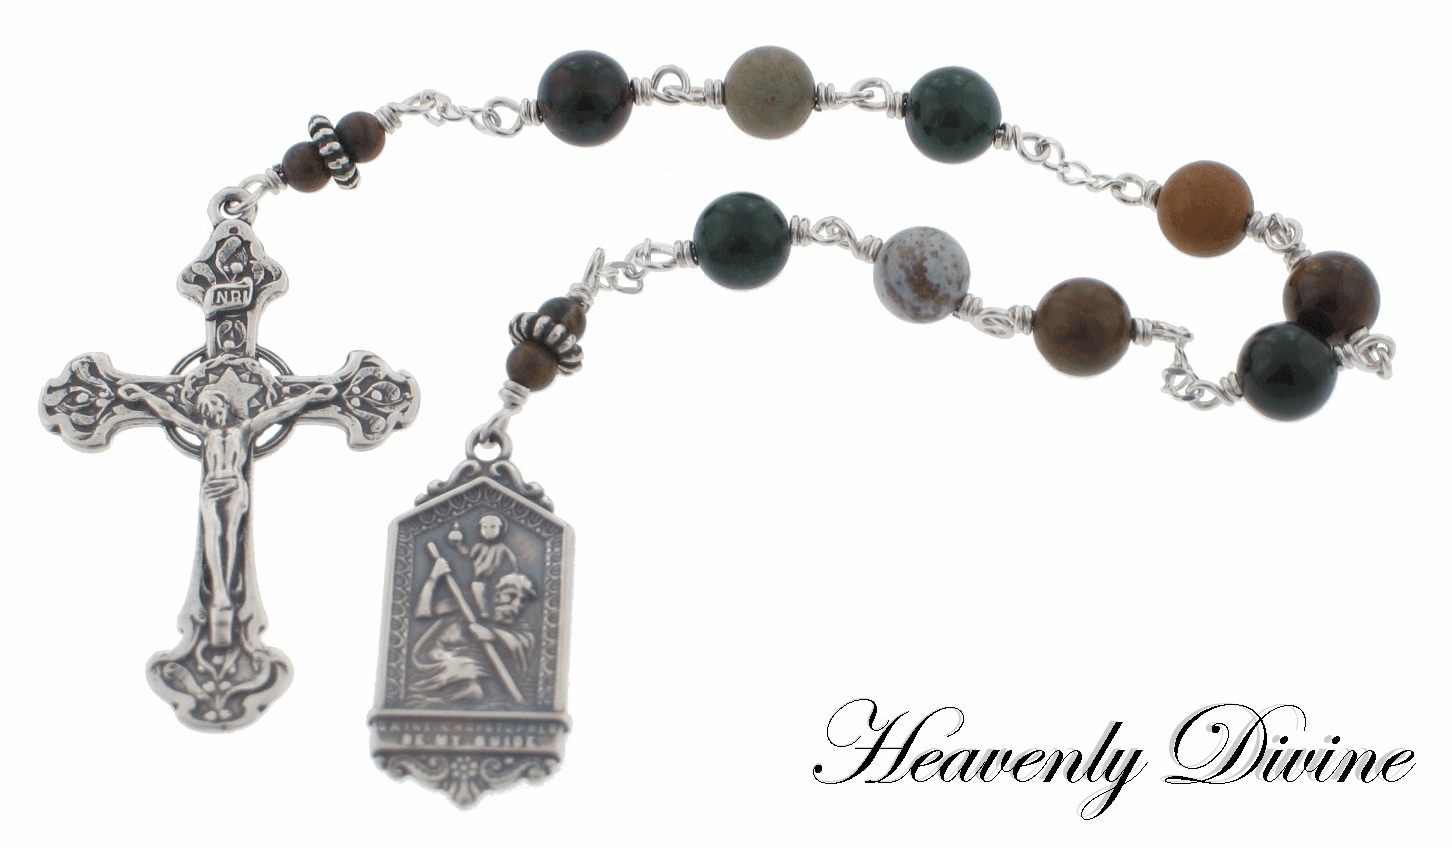 Handmade Saint Christopher Chaplet by Heavenly Divine